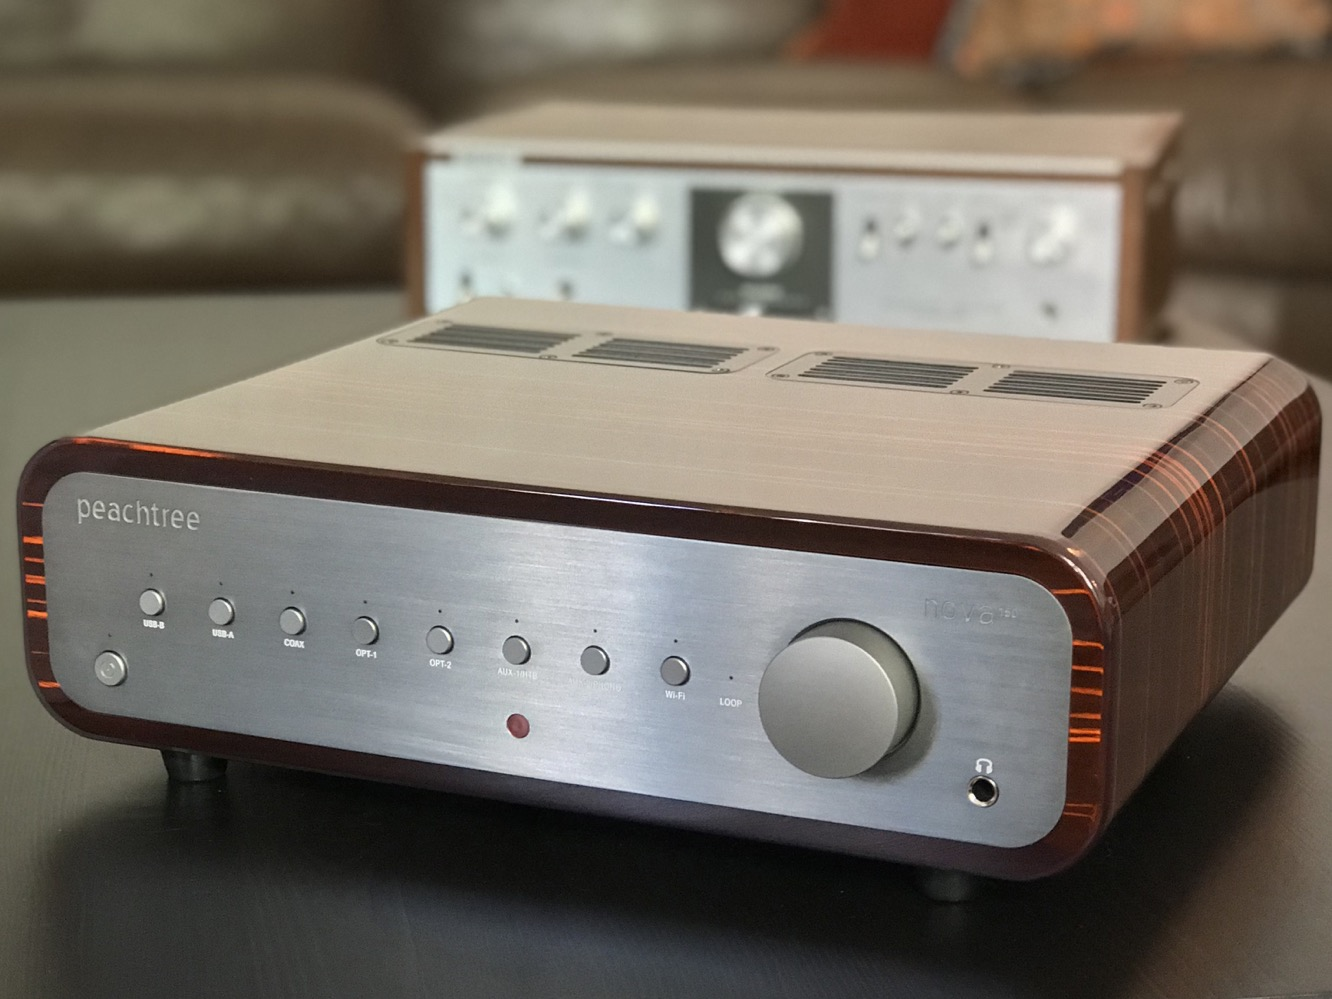 Review: Peachtree Nova150 Hi-Fi Amplifier 5